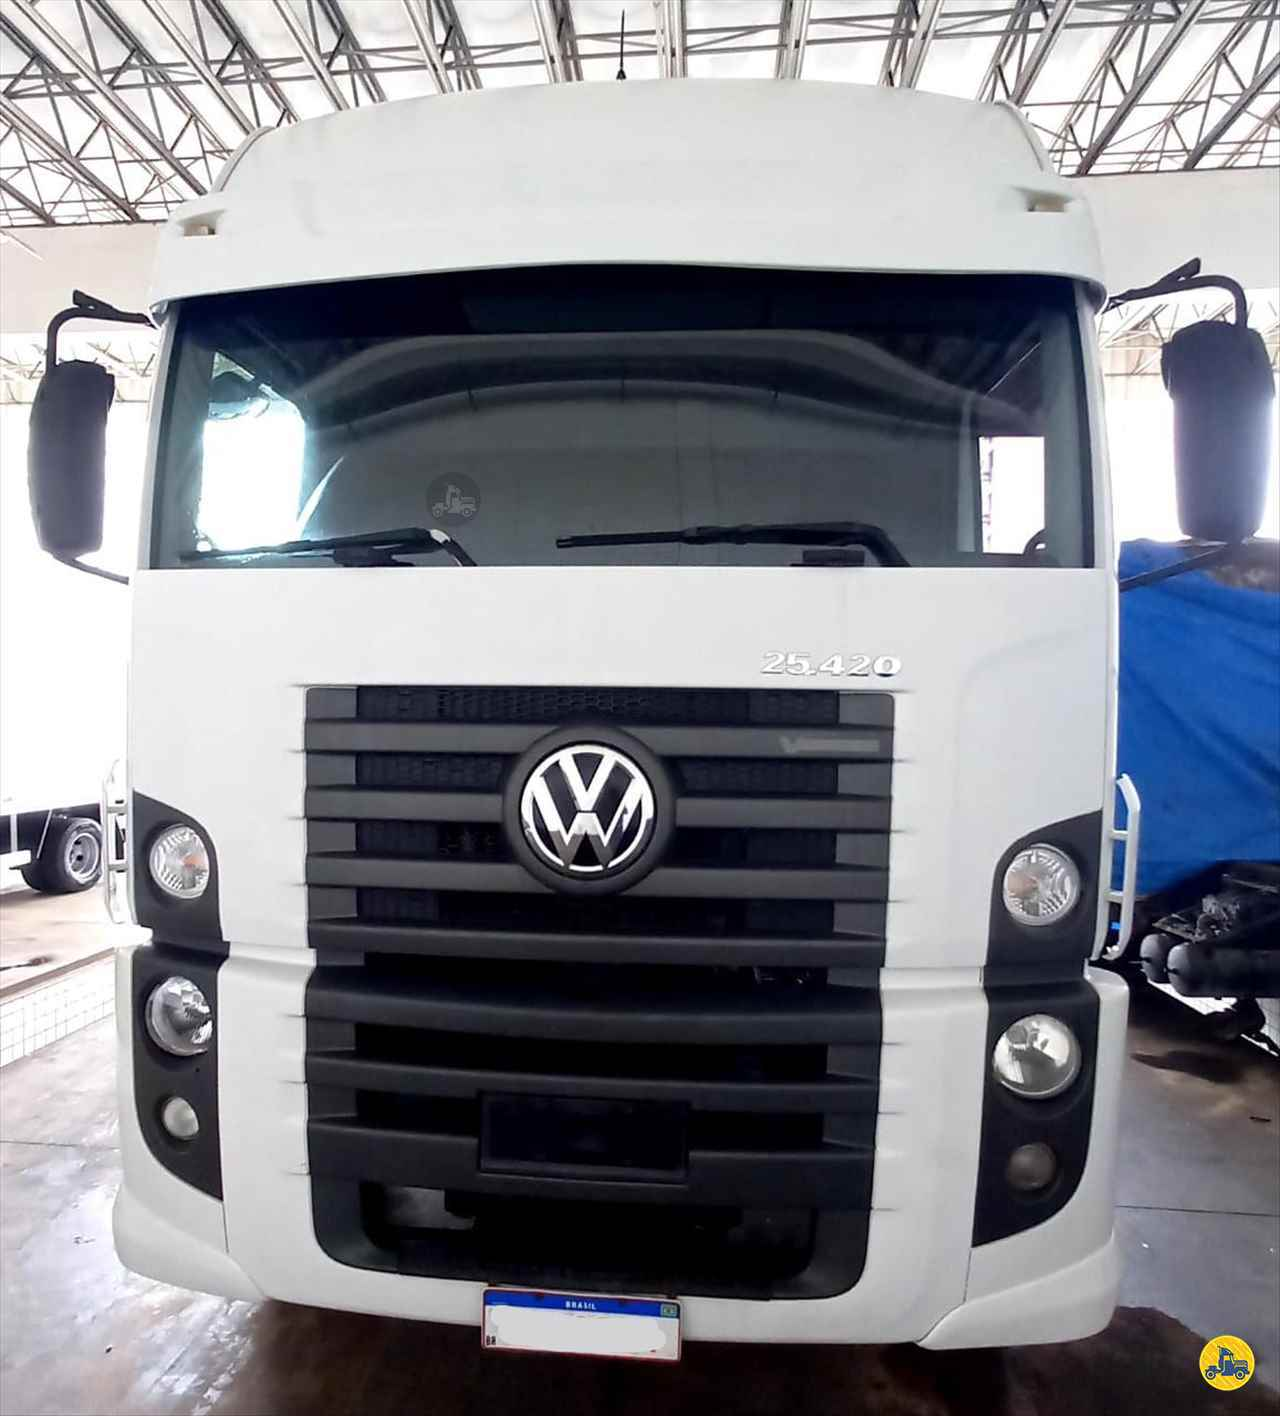 CAMINHAO VOLKSWAGEN VW 25420 Chassis Truck 6x2 Monaco Diesel - VW ANANINDEUA PARÁ PA